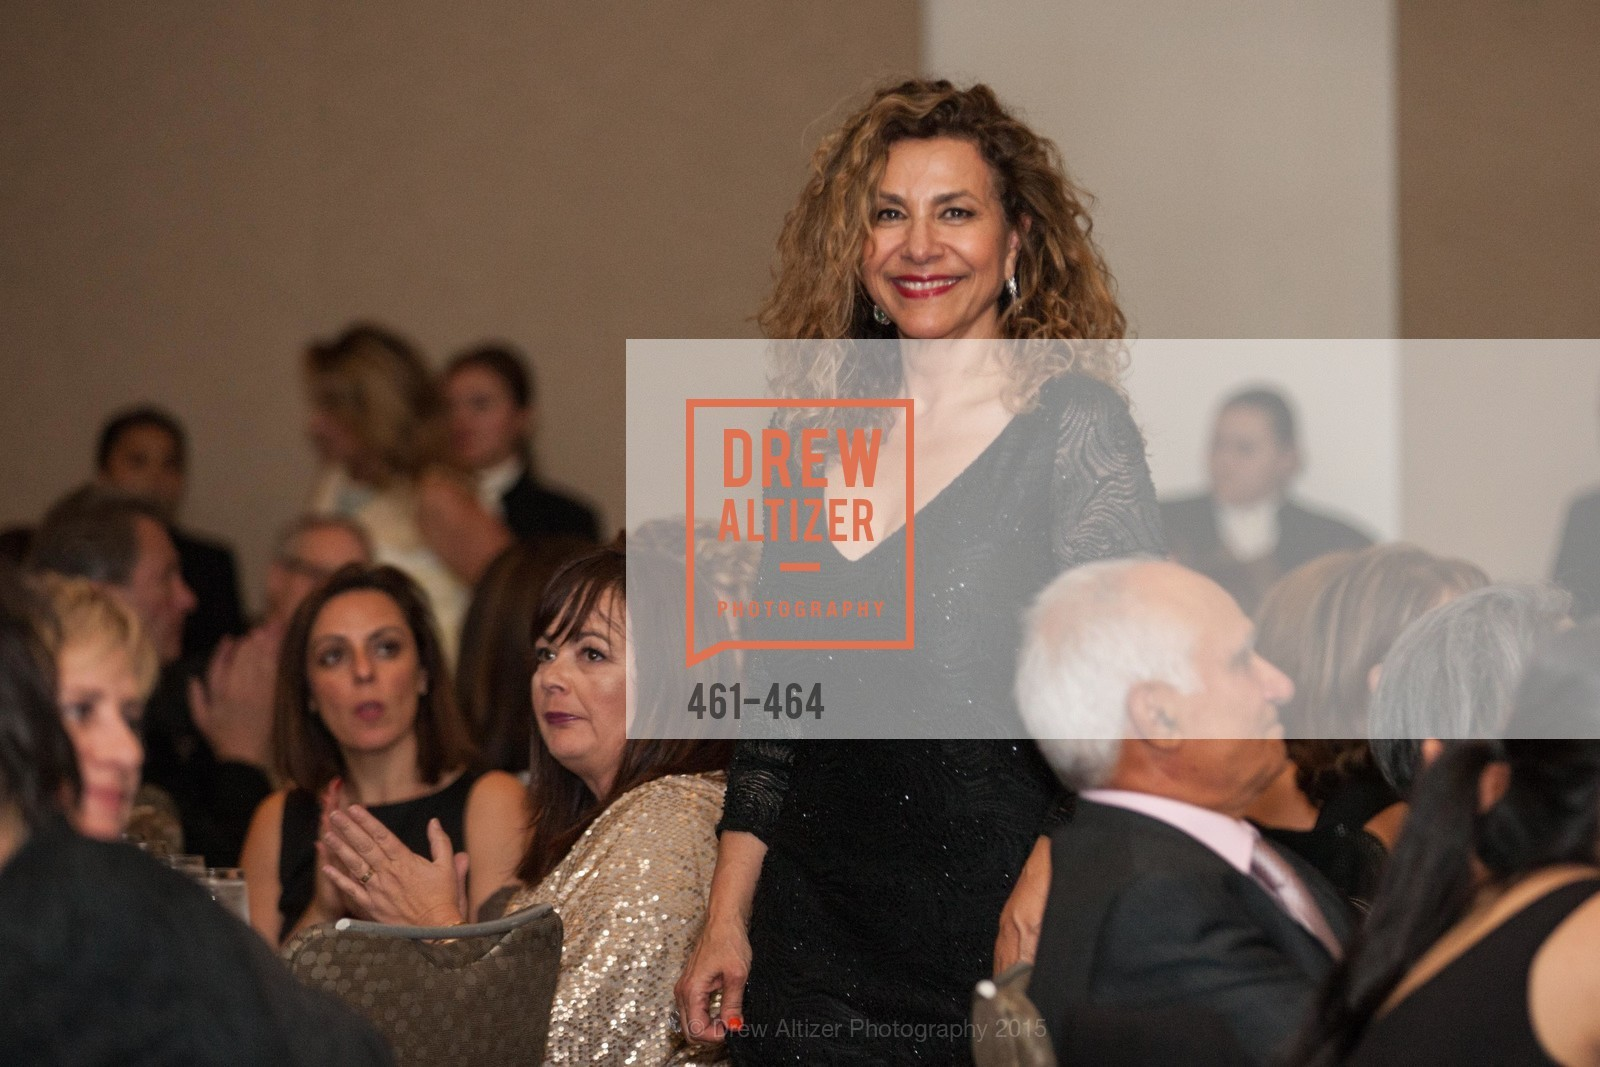 Gloria Hakimi, Operation Smile Presents THE SAN FRANCISCO 2015 SMILE GALA, InterContinental Hotel, November 7th, 2015,Drew Altizer, Drew Altizer Photography, full-service agency, private events, San Francisco photographer, photographer california